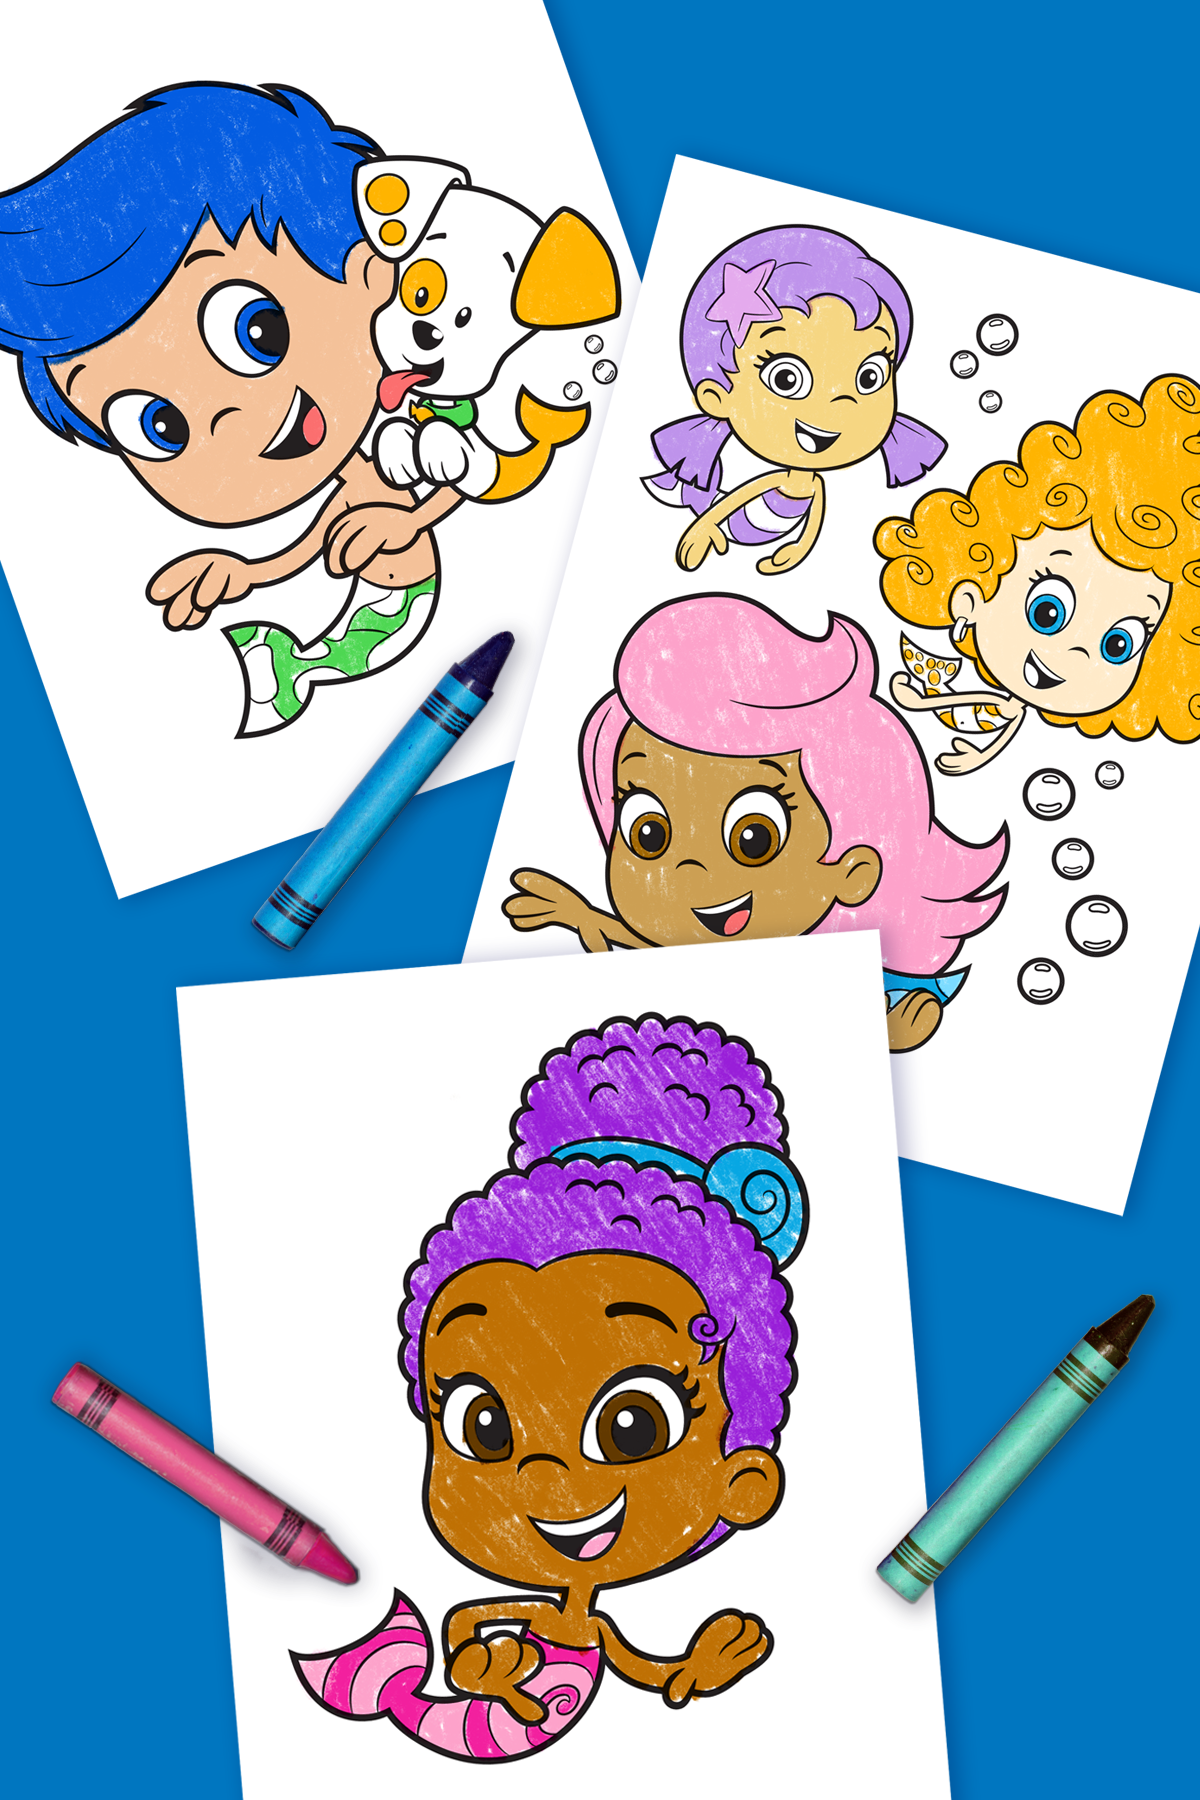 Meet Zooli Bubble Guppies Coloring Pages Bubble Guppies Coloring Pages Bubble Guppies Birthday Party Bubble Guppies Party